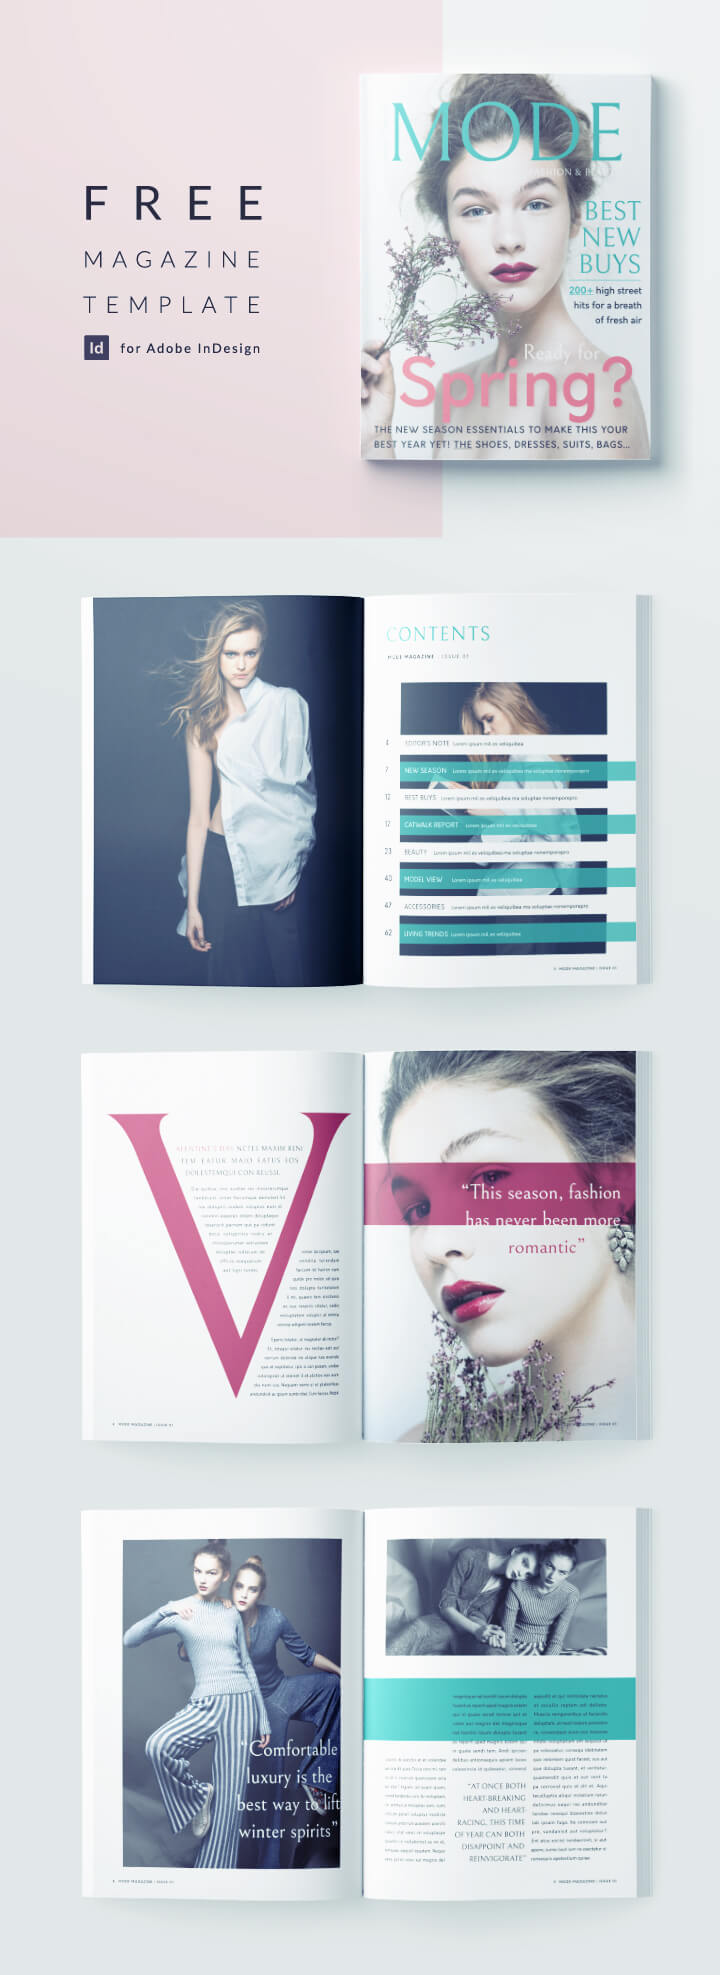 free fashion magazine template for indesign - full magazine template